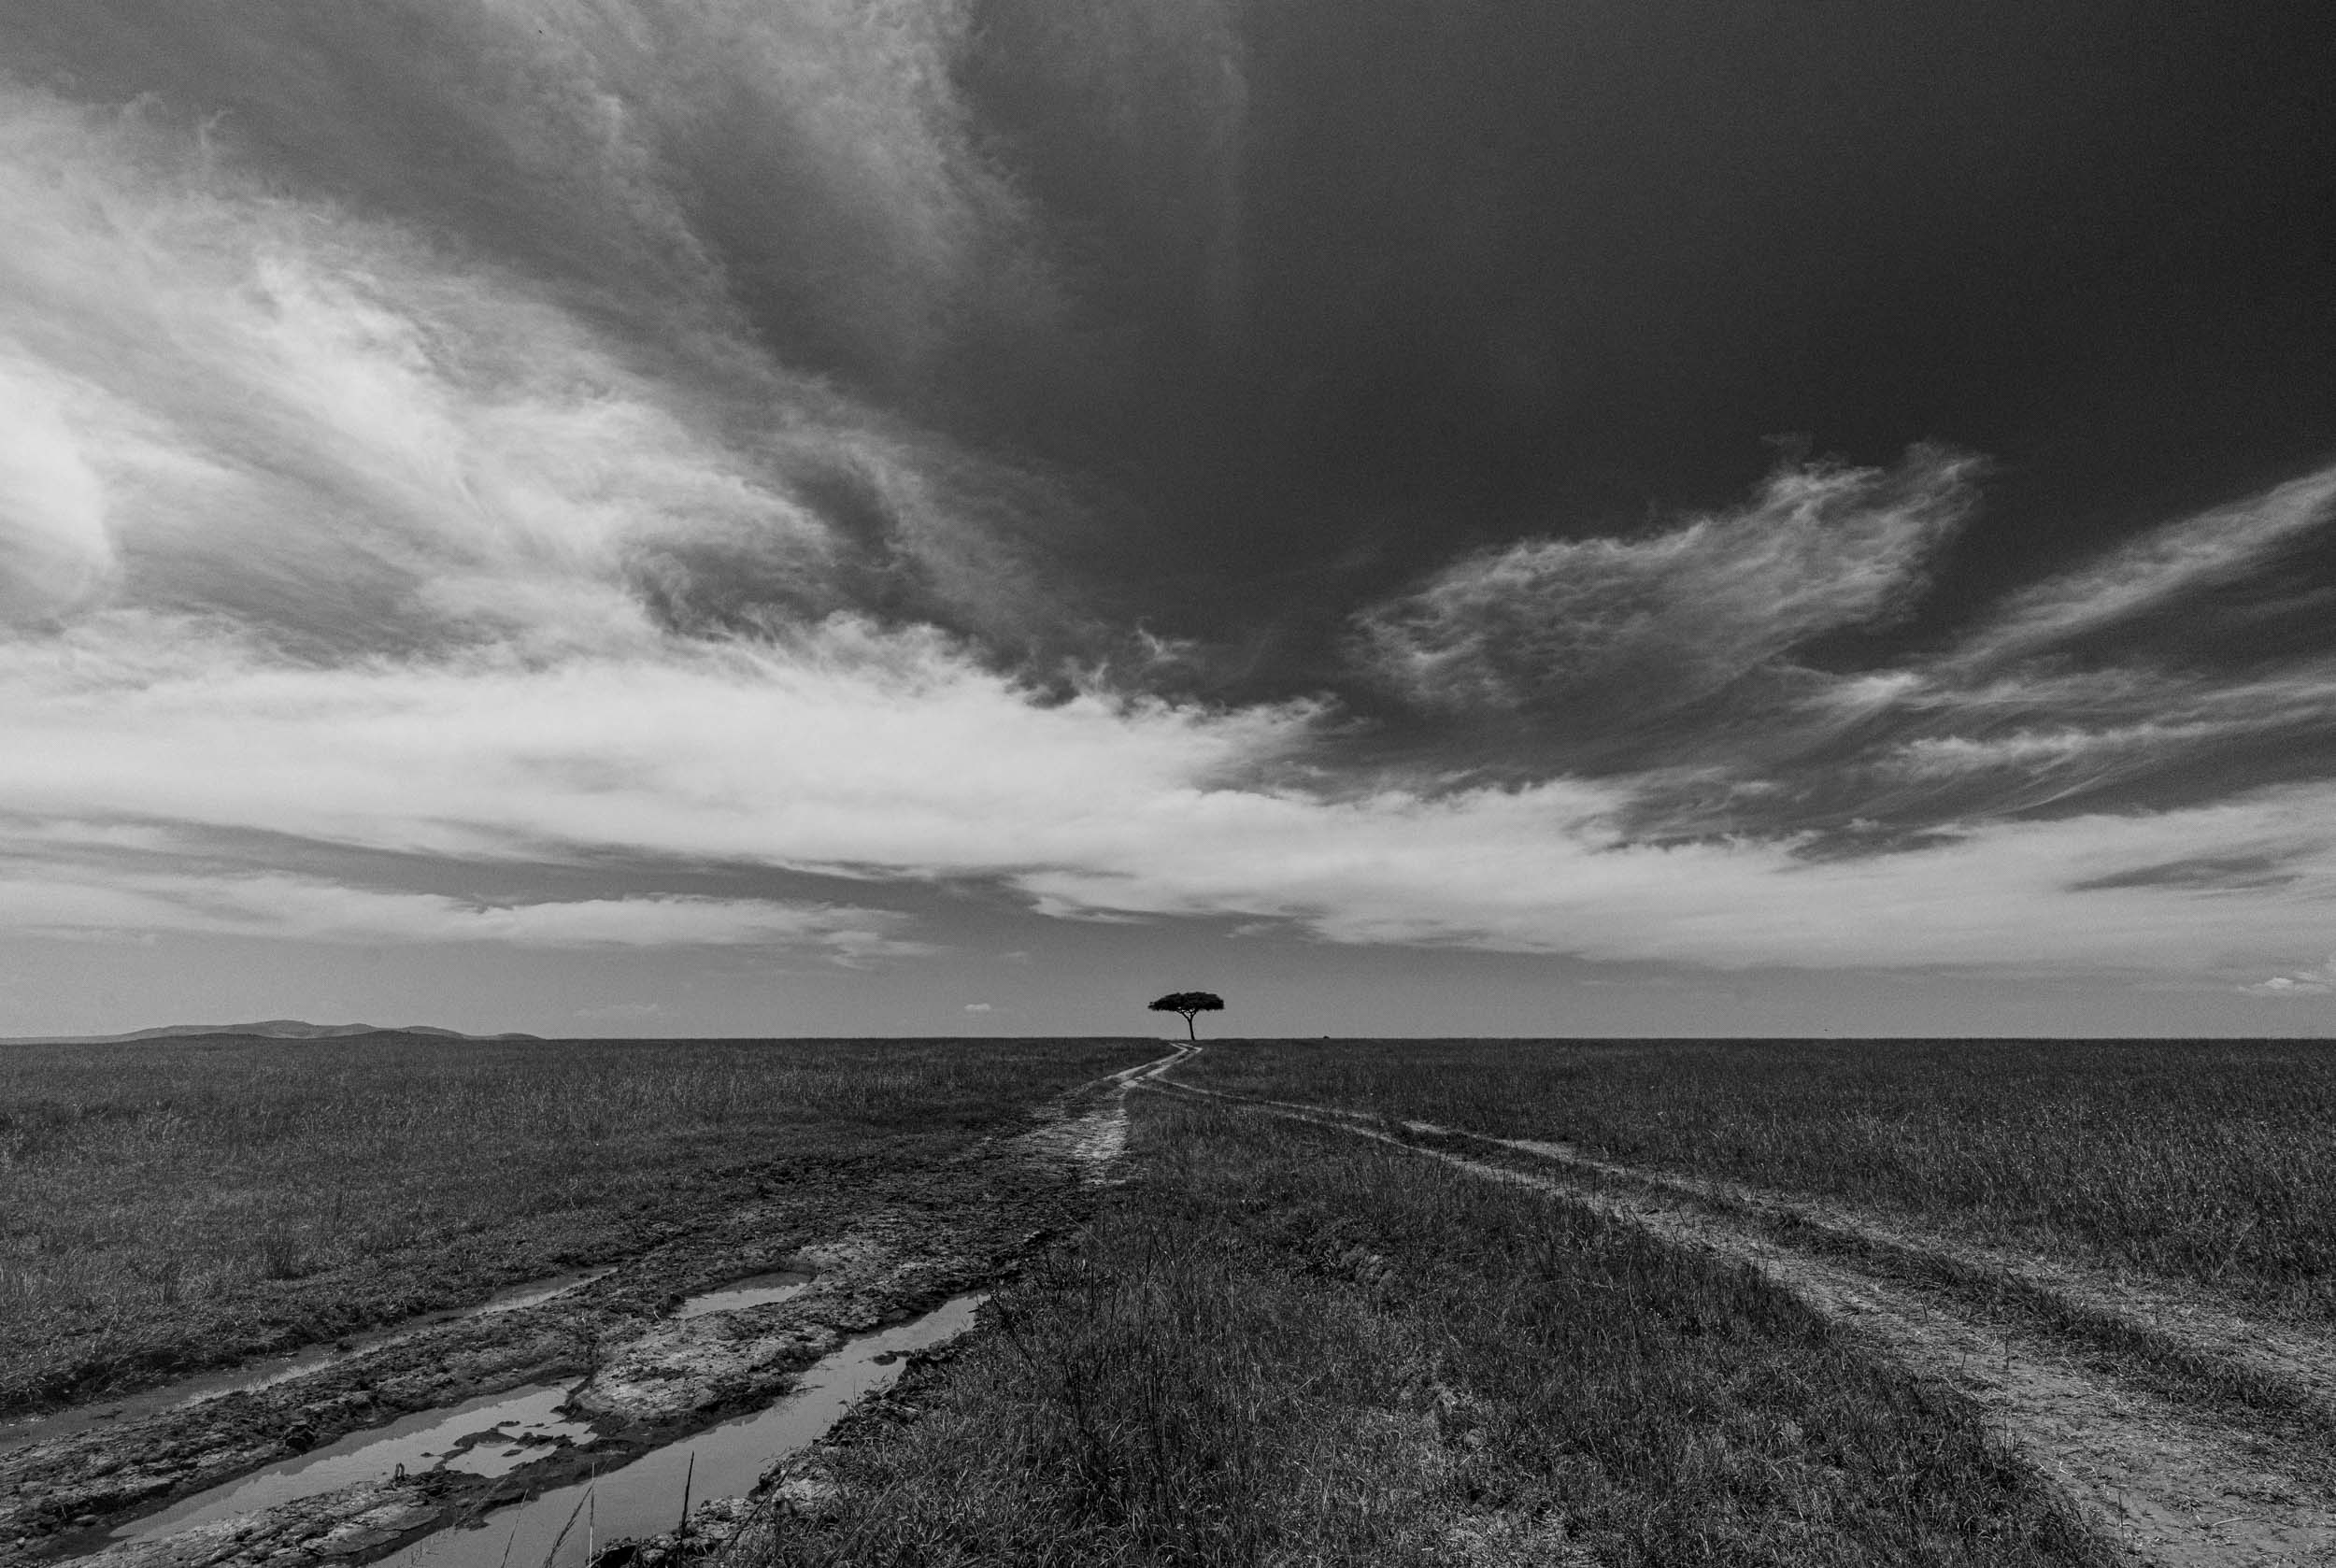 Single acacia tree against sky africa landscape black and white.jpg